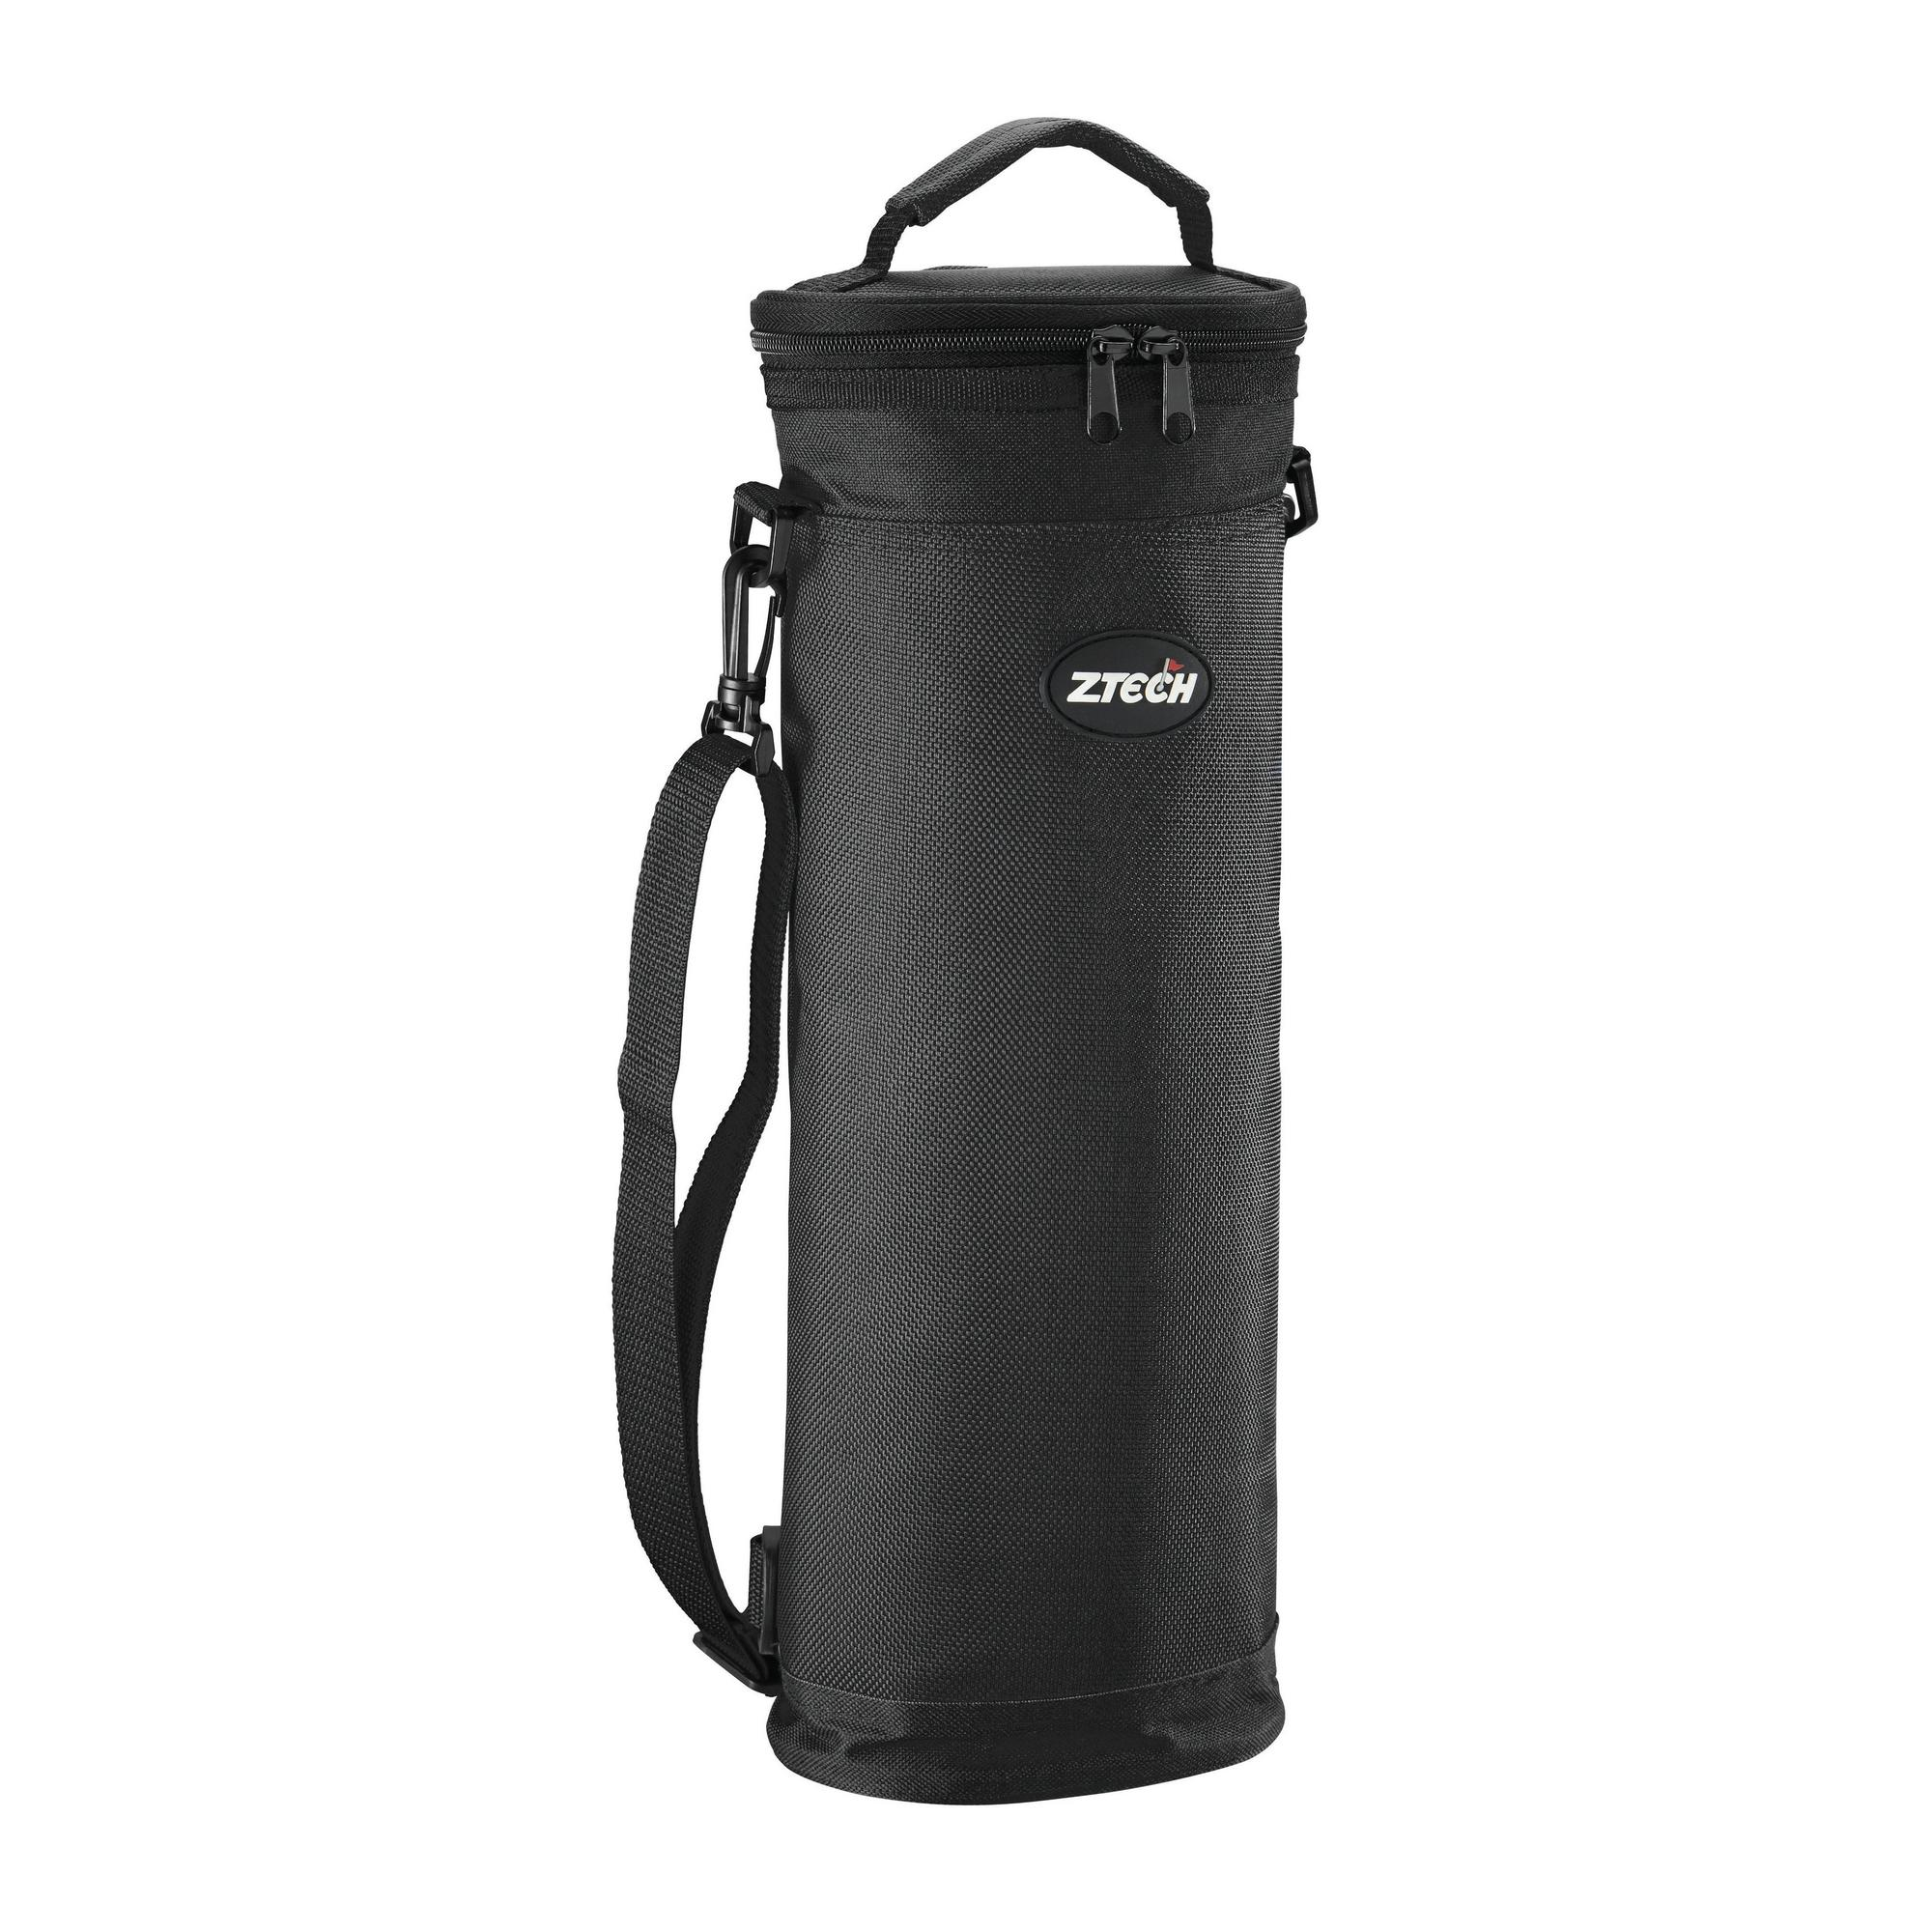 Sac isotherme pour 6 canettes